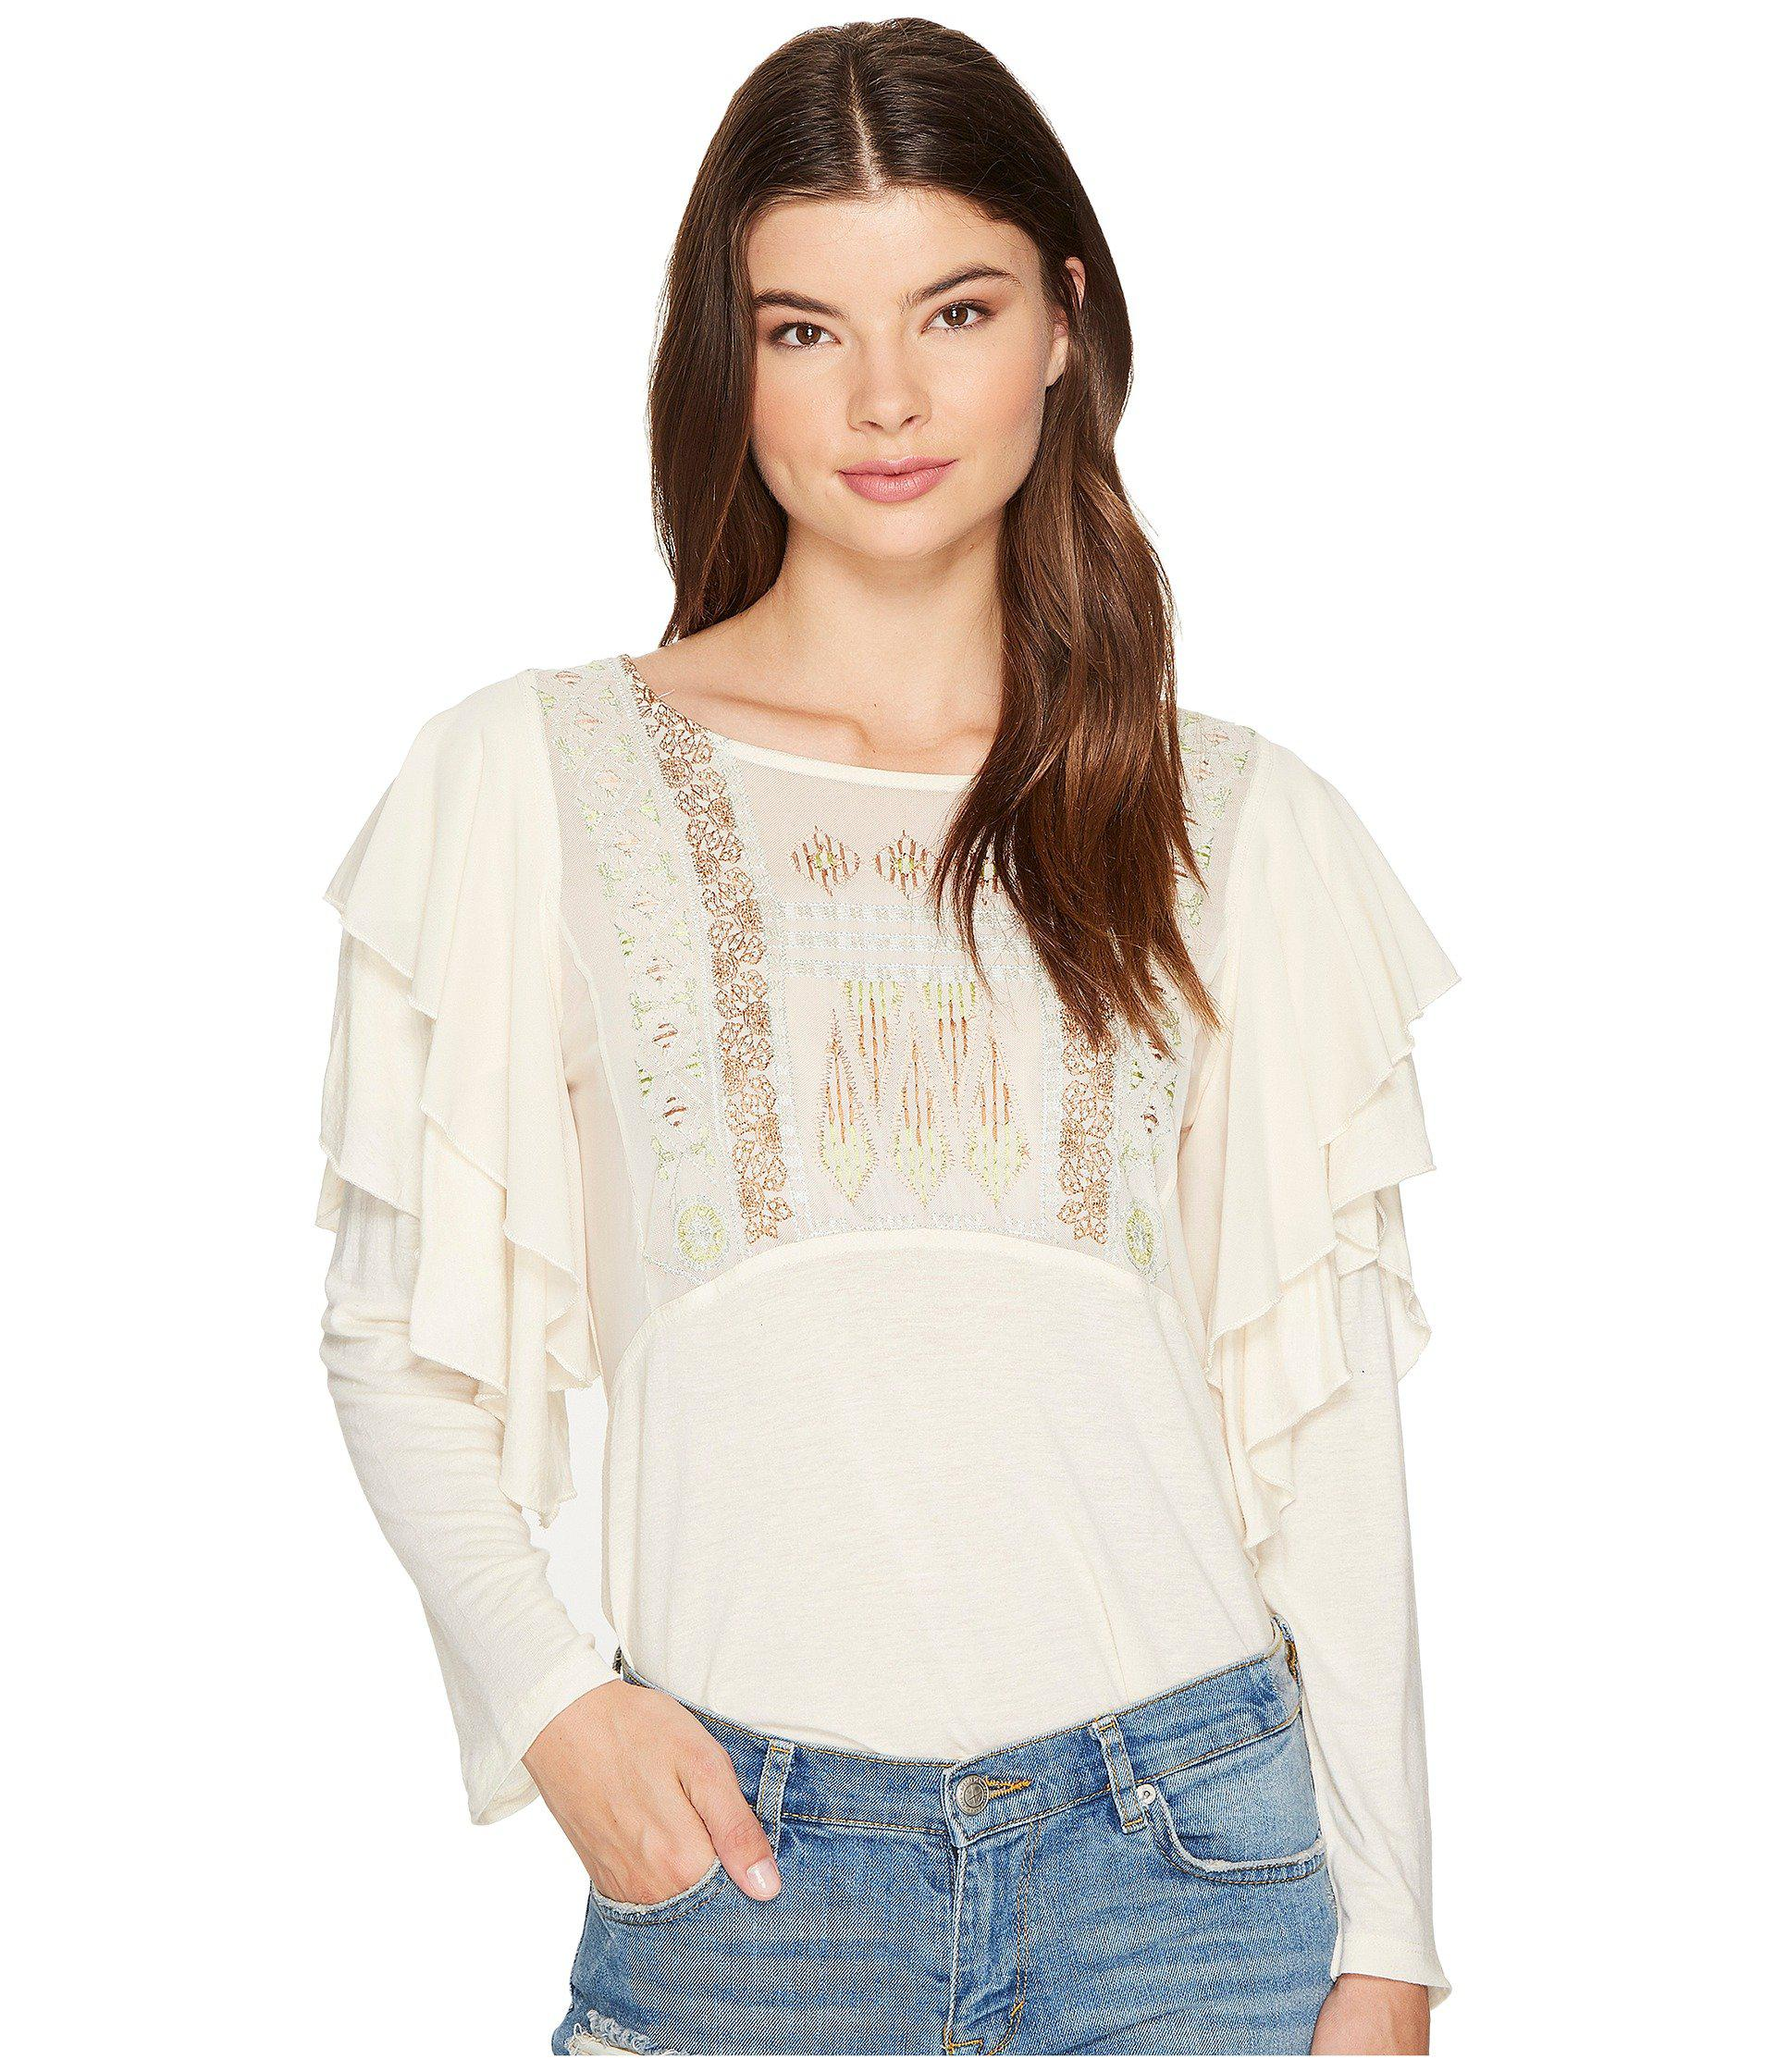 584353d473116 Lyst - Free People La Cienga Top in Natural - Save 42%